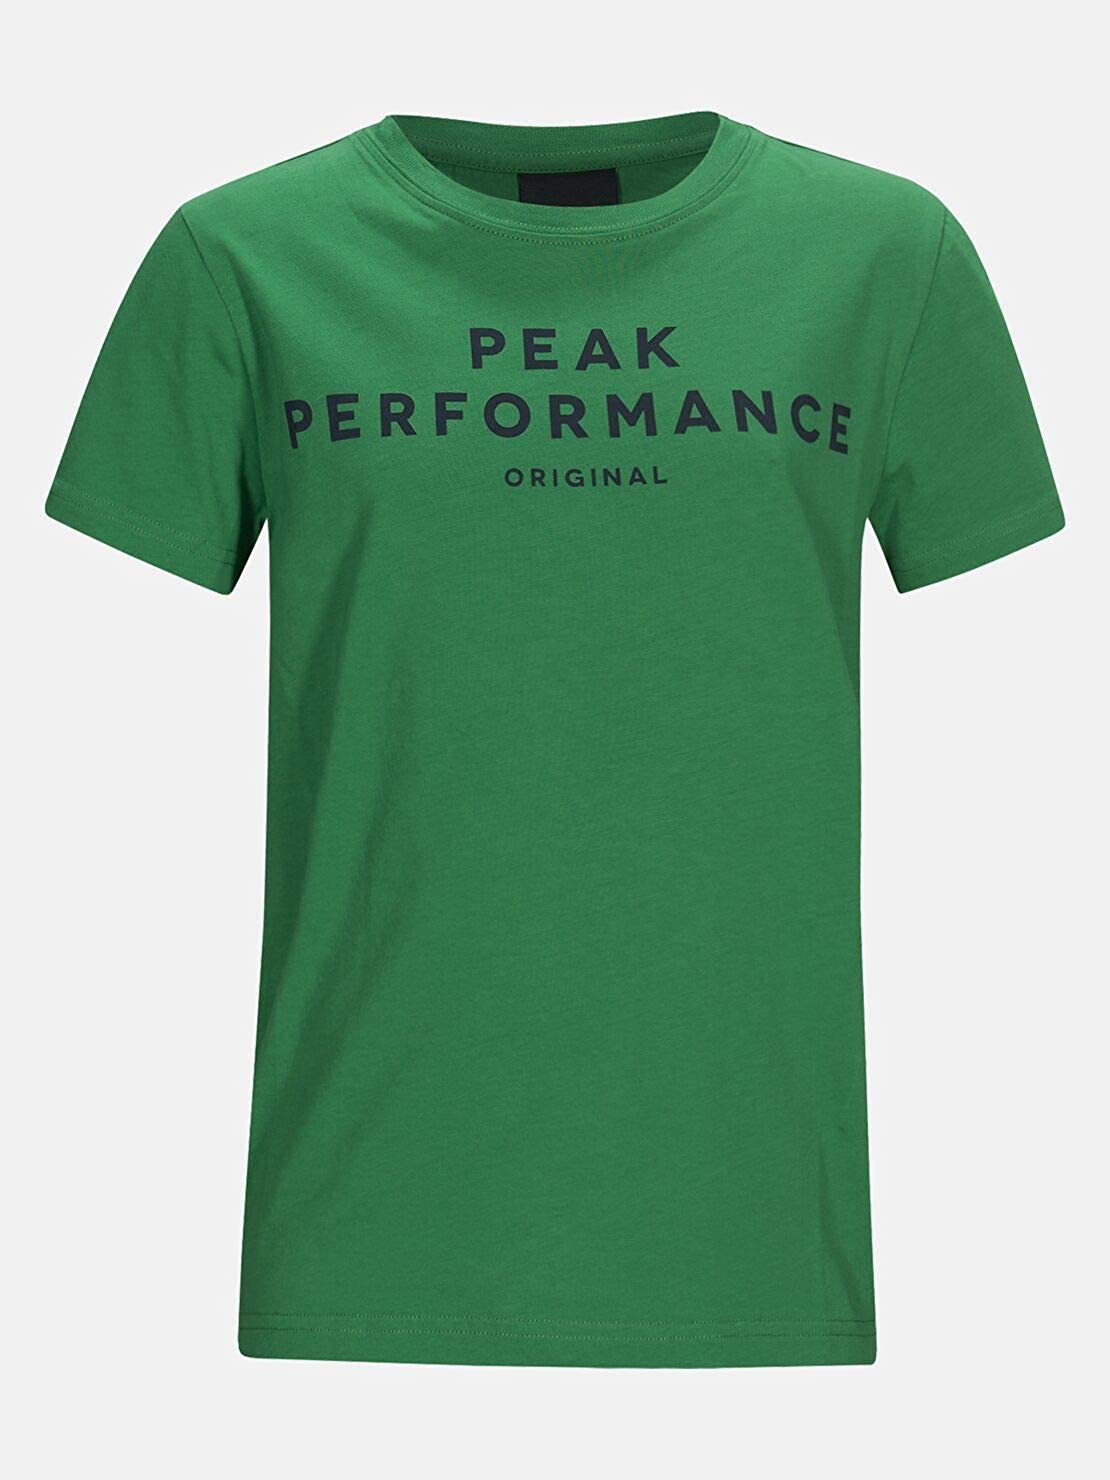 PEAK PERFORMANCE Jelly Bean - Camiseta para niño Jelly Bean 130 cm ...